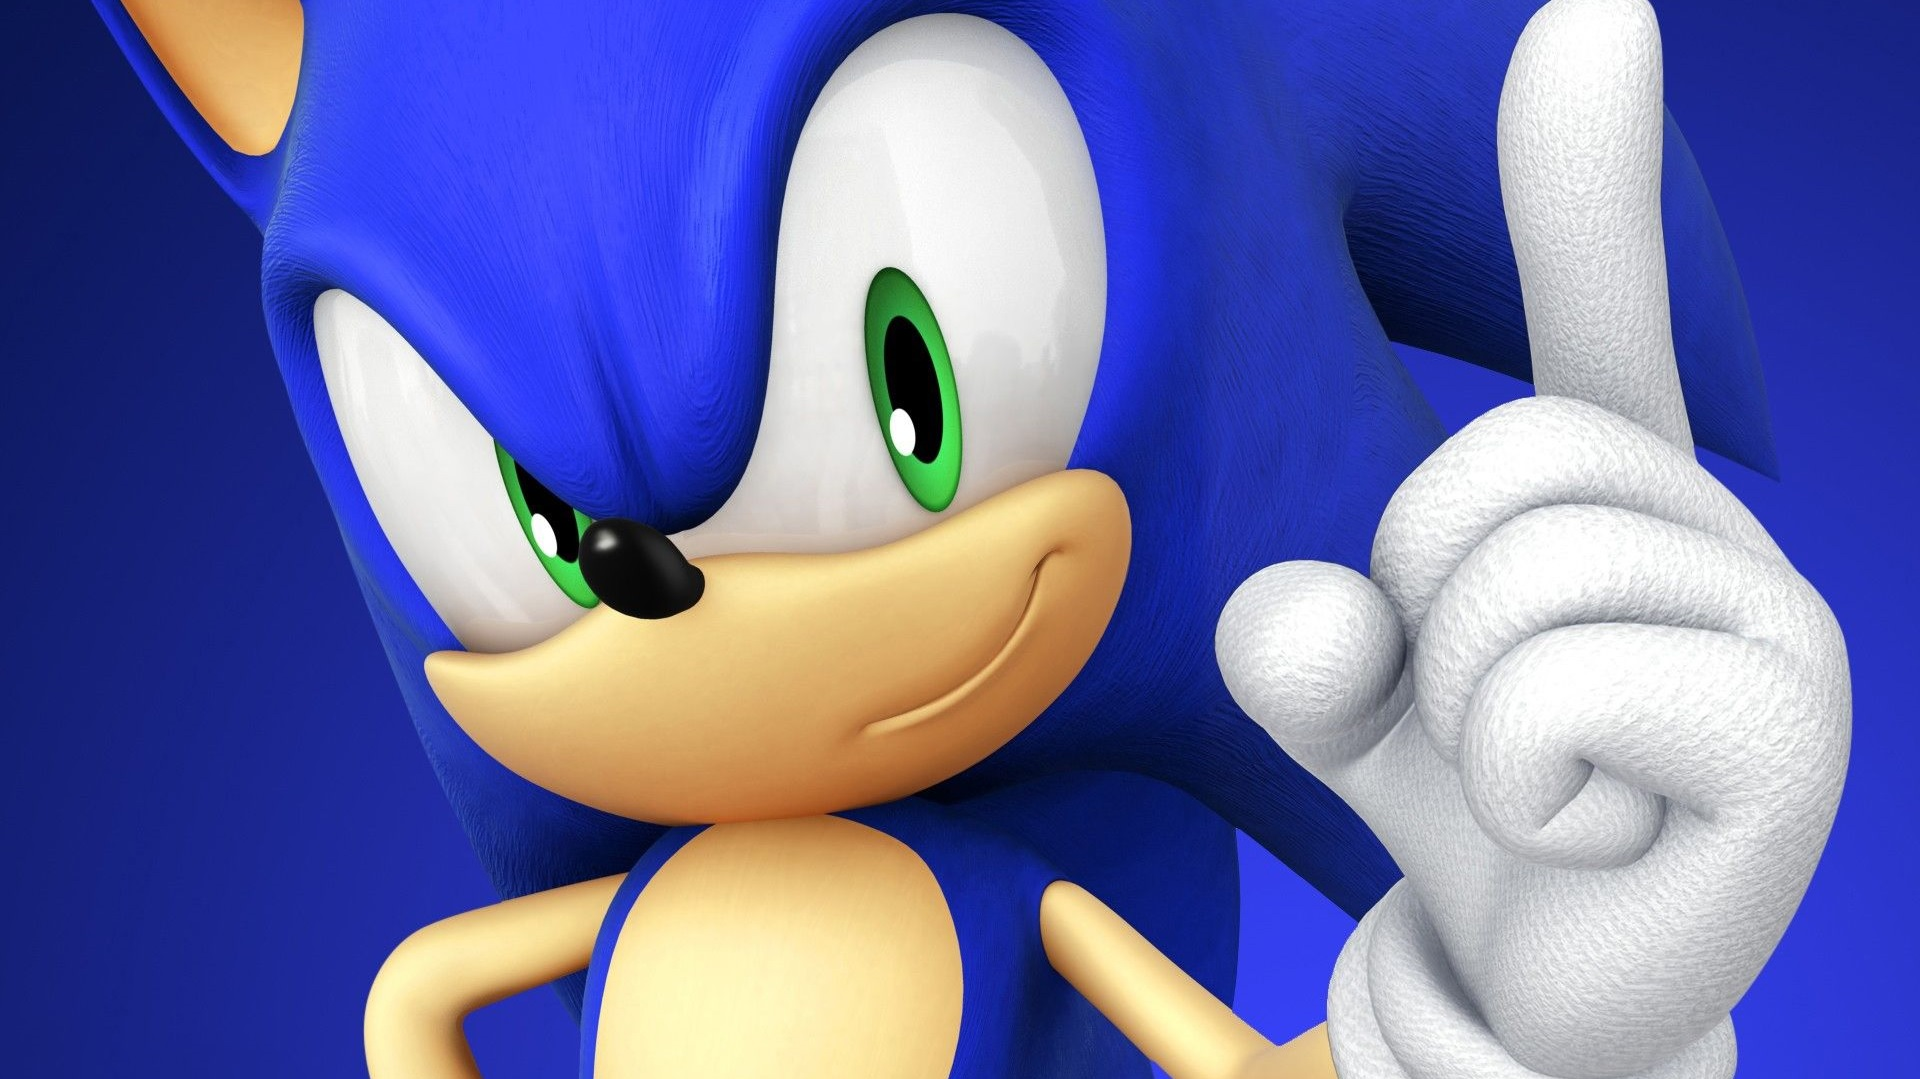 Fans remake Sonic the Hedgehog 2006 on the PC in Unity